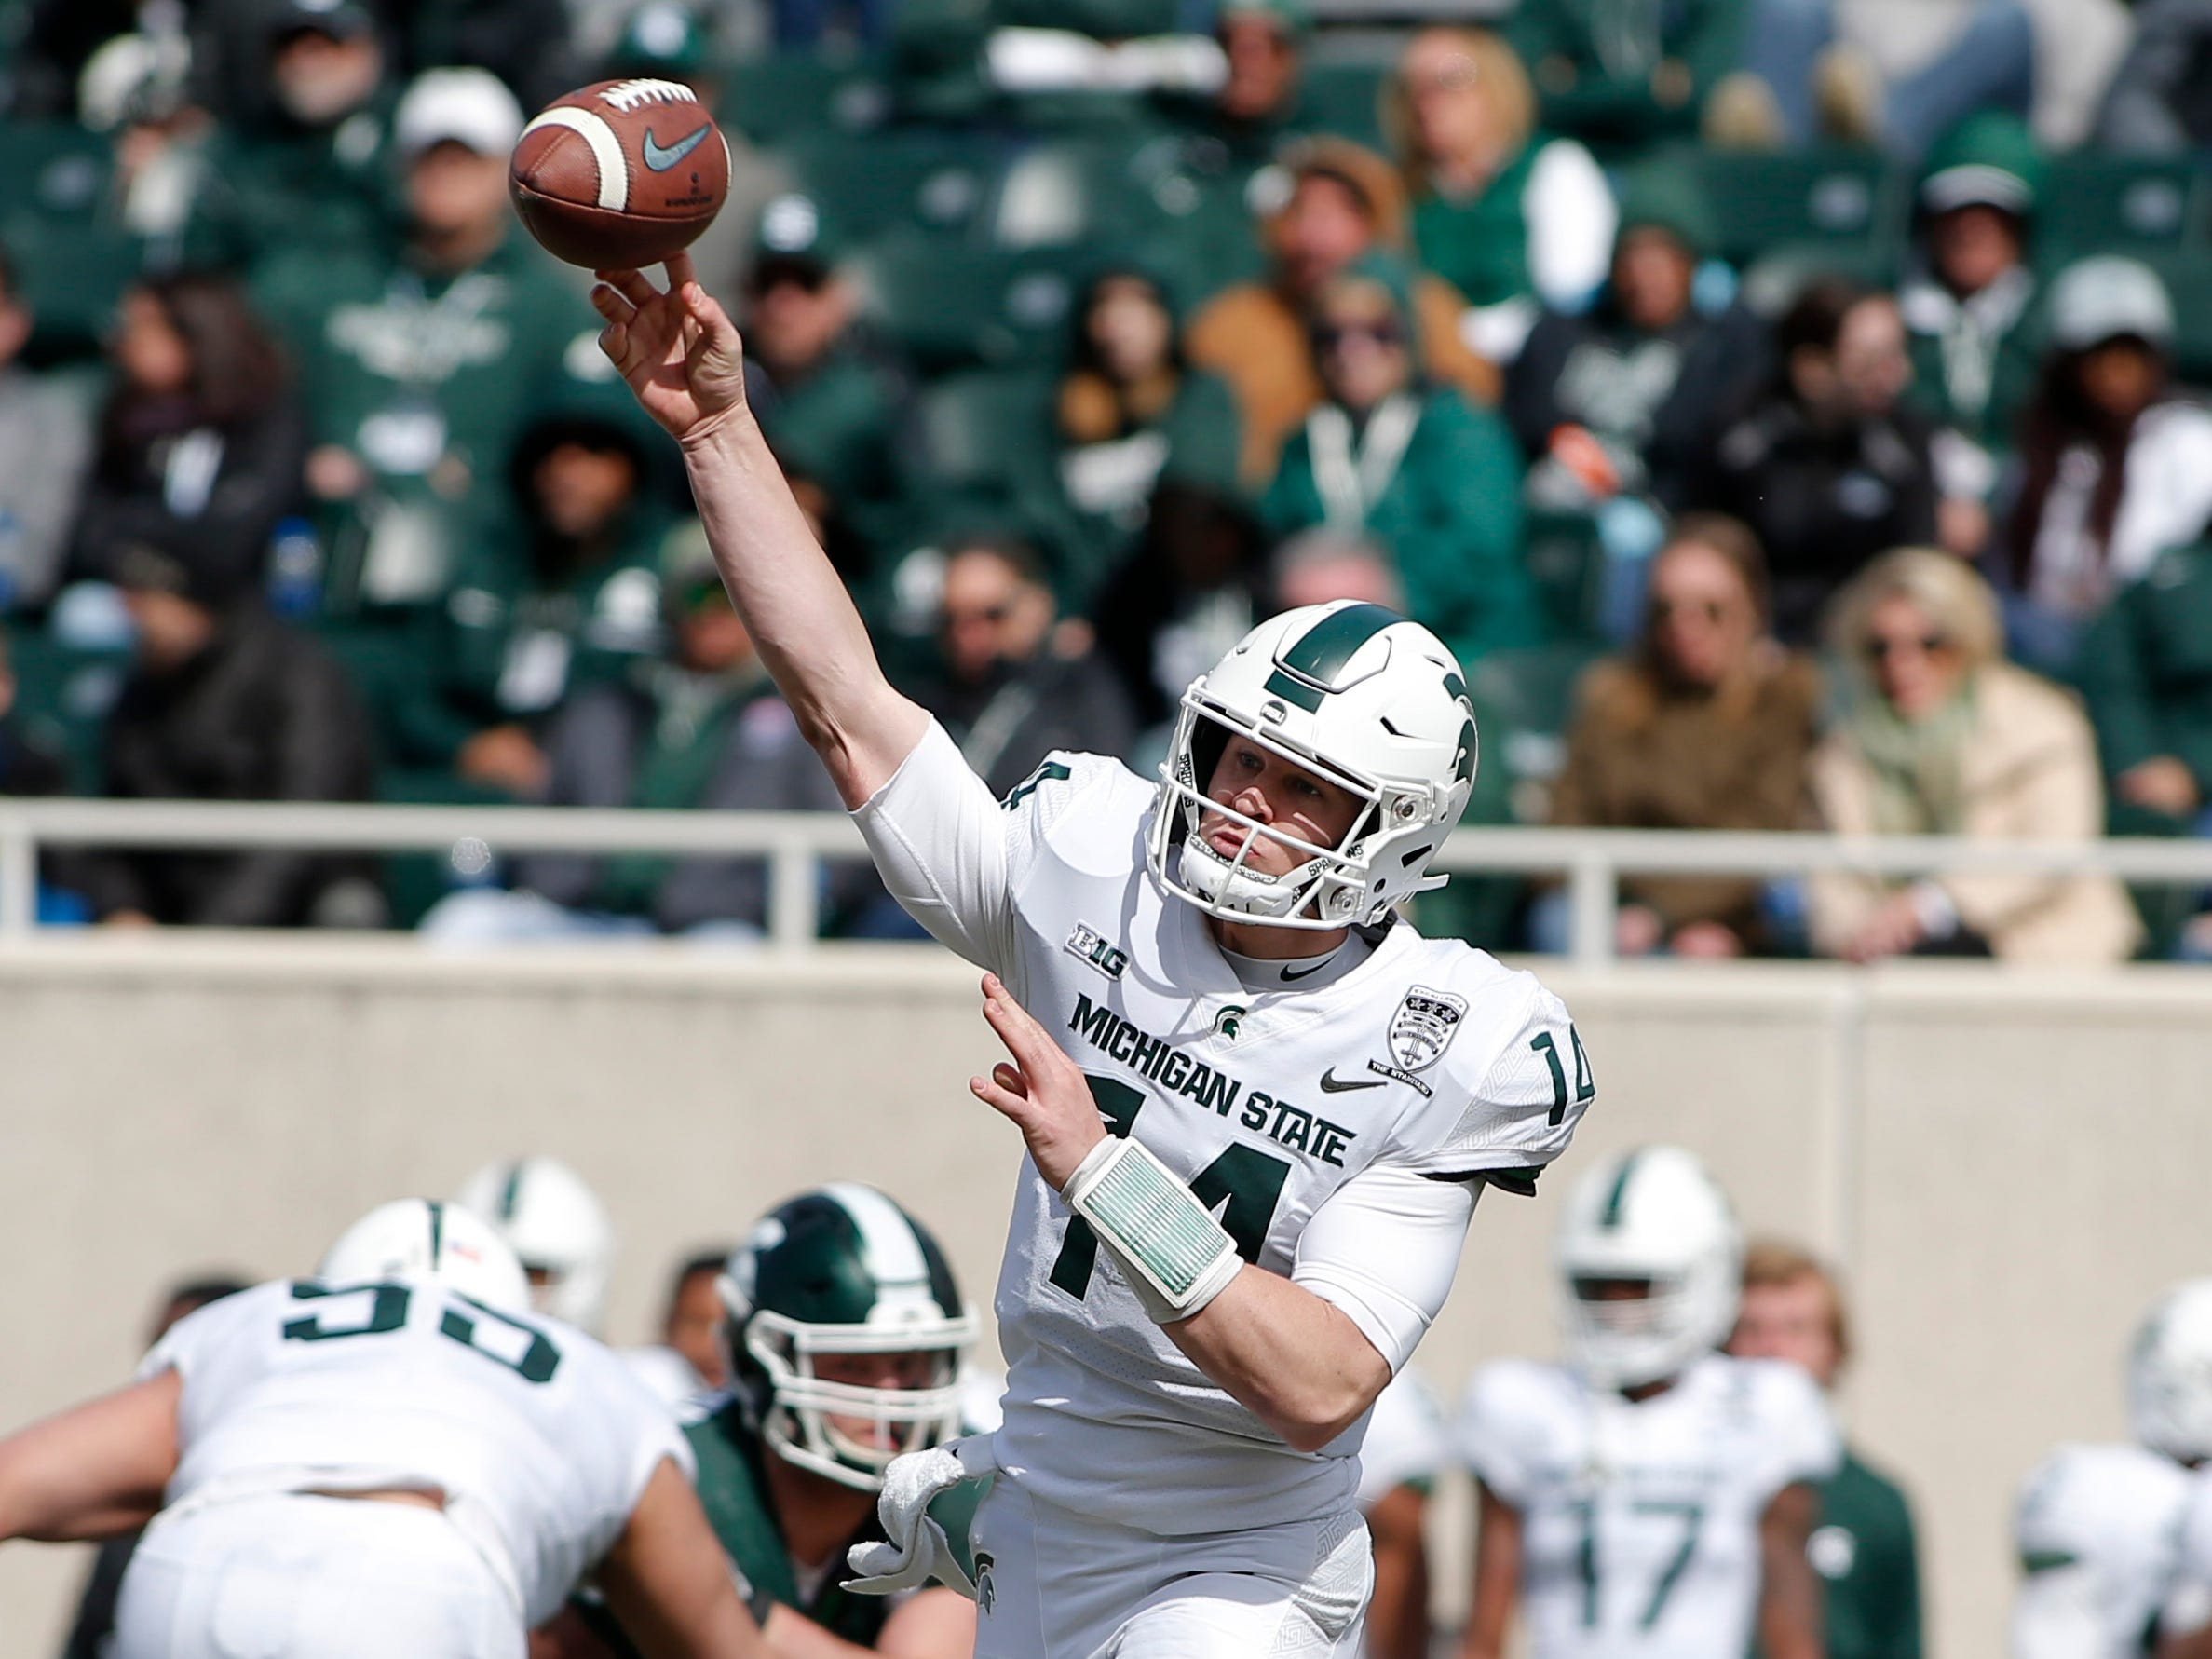 Michigan State quarterback Brian Lewerke throws a pass during an NCAA college football spring scrimmage game, Saturday, April 13, 2019, in East Lansing, Mich. (AP Photo/Al Goldis)